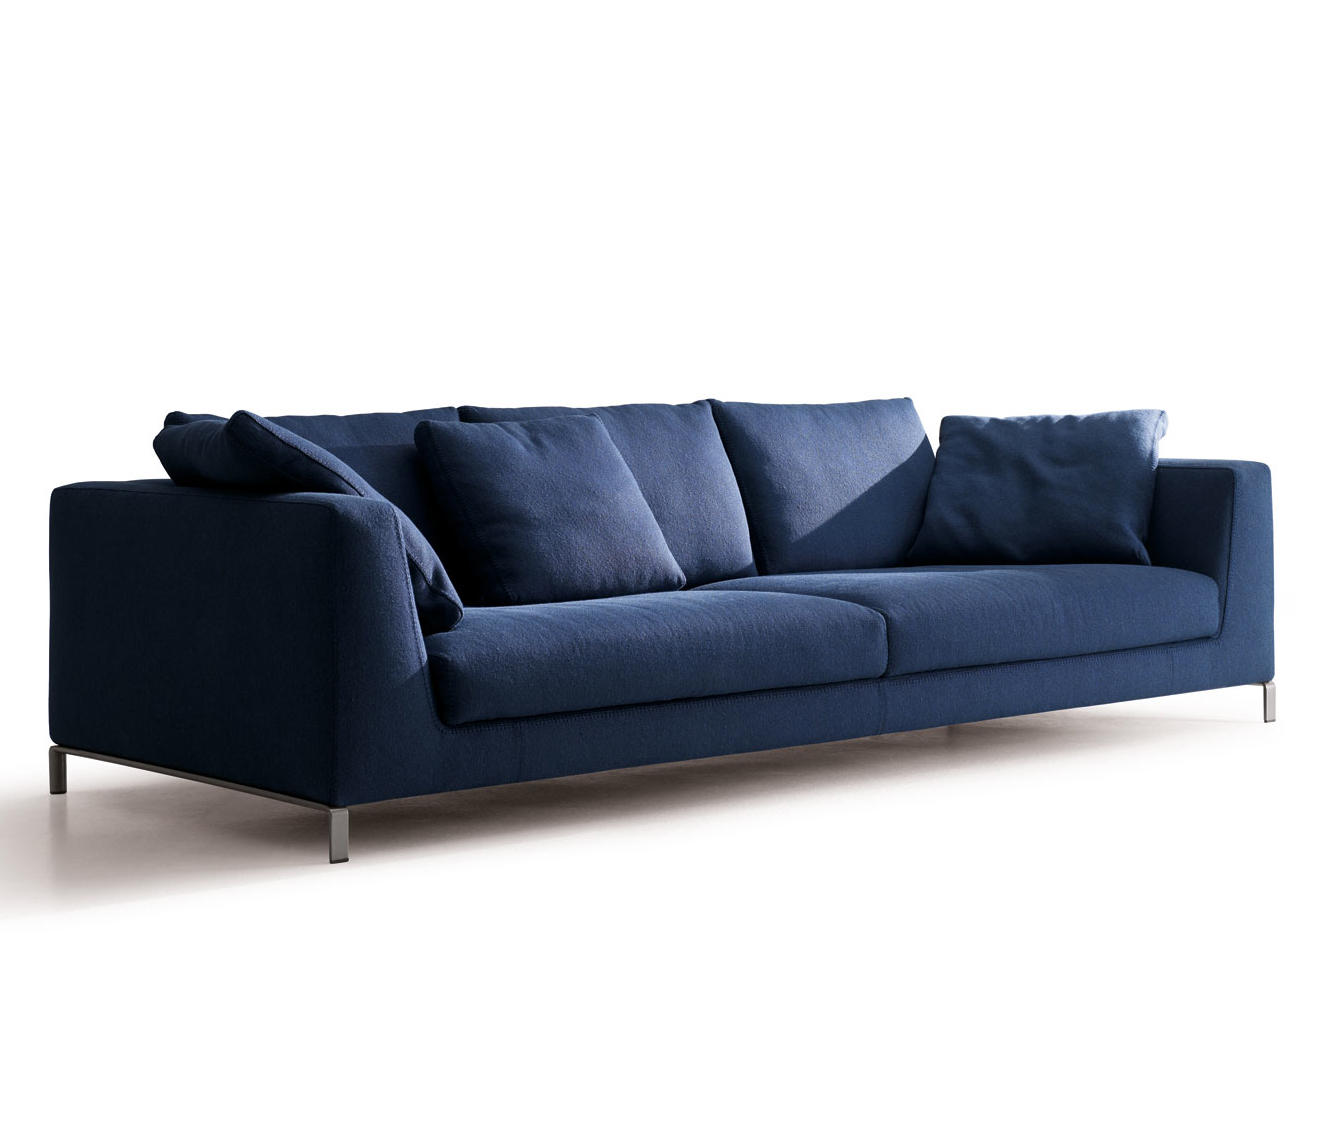 RAY - Lounge sofas from B&B Italia | Architonic